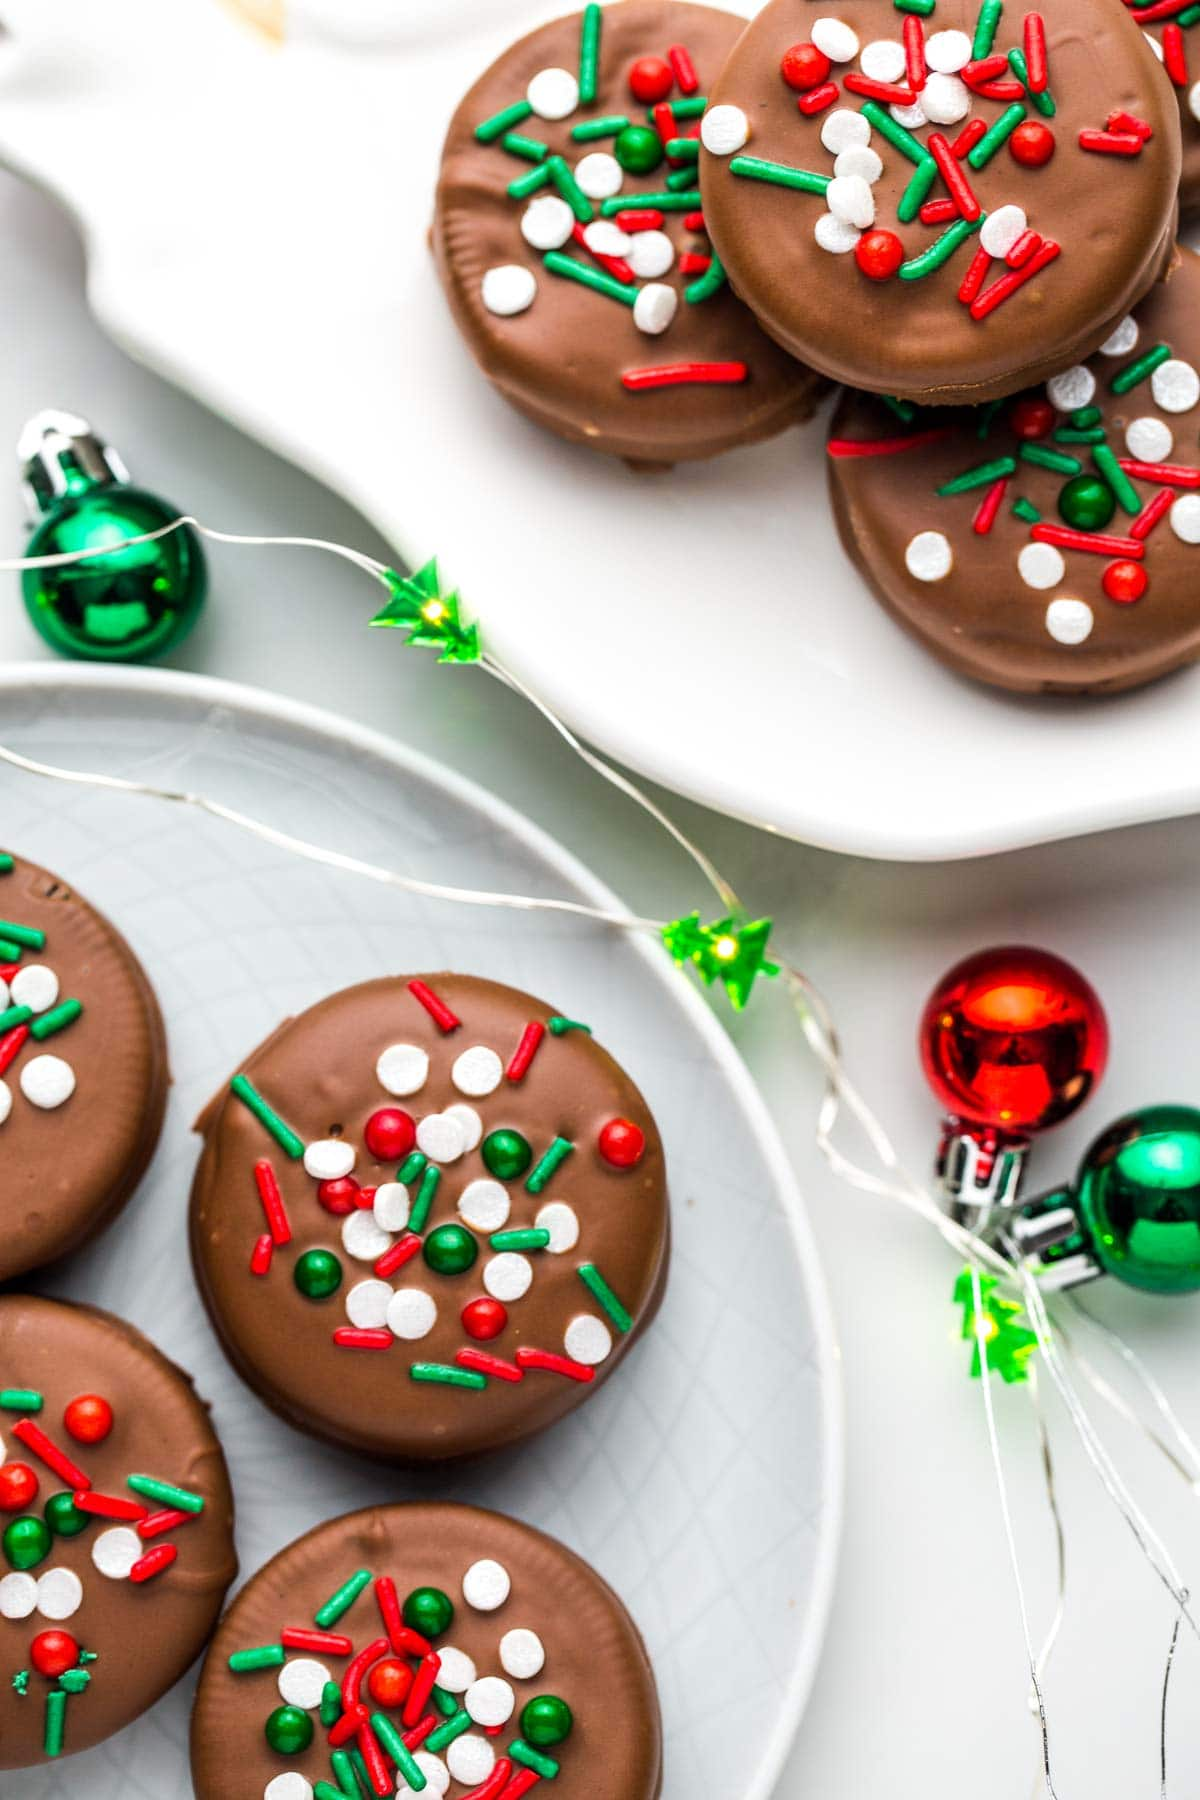 Overhead shot of 2 plates with Chocolate Covered Oreos with Christmas ornaments and lights.